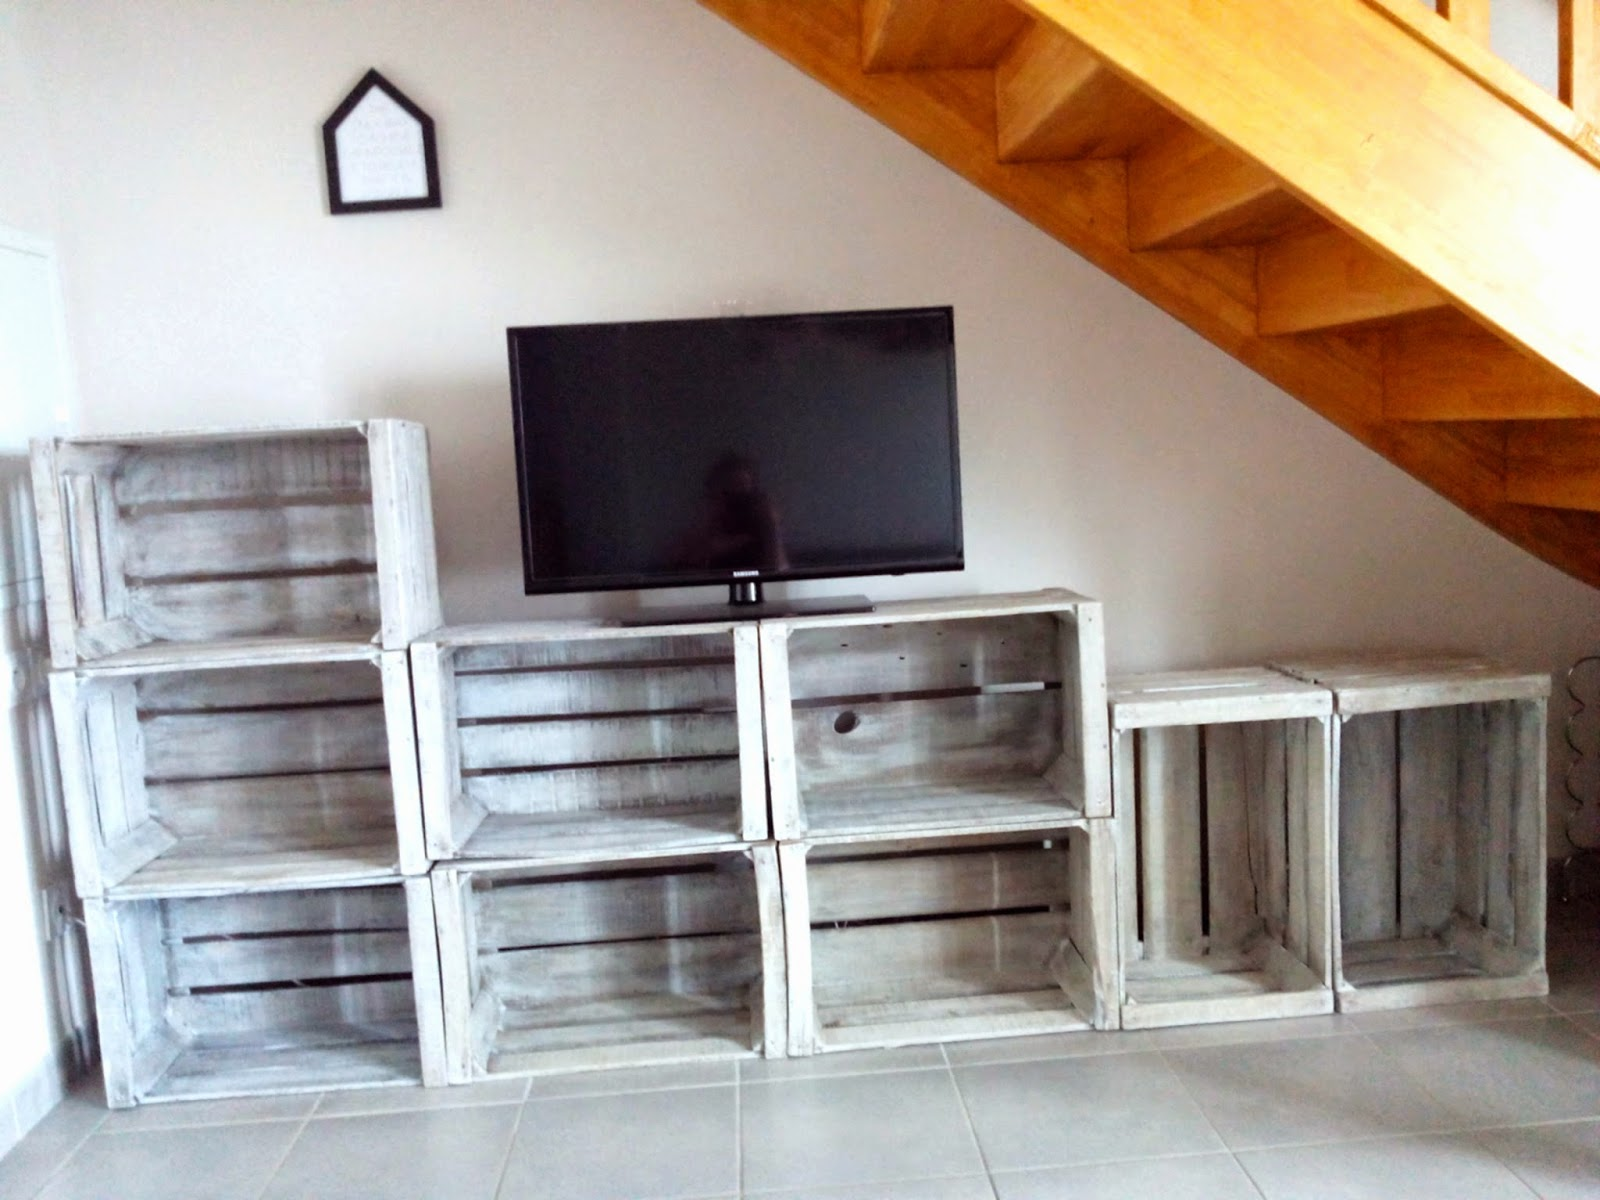 do it yourself meuble tv avec caisses en bois bull 39 elodie. Black Bedroom Furniture Sets. Home Design Ideas